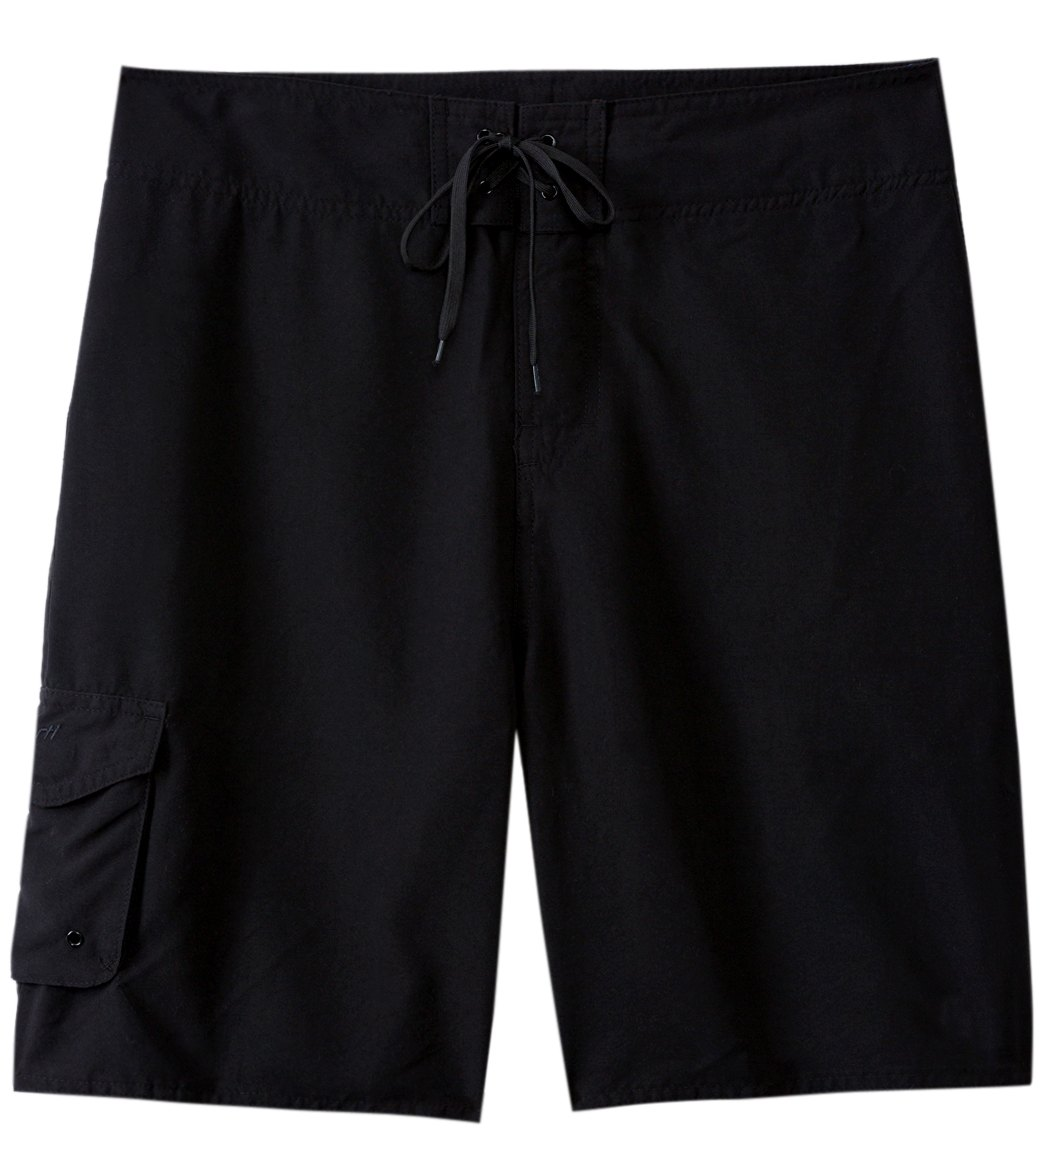 Sporti Men's Essential Board Short at SwimOutlet.com